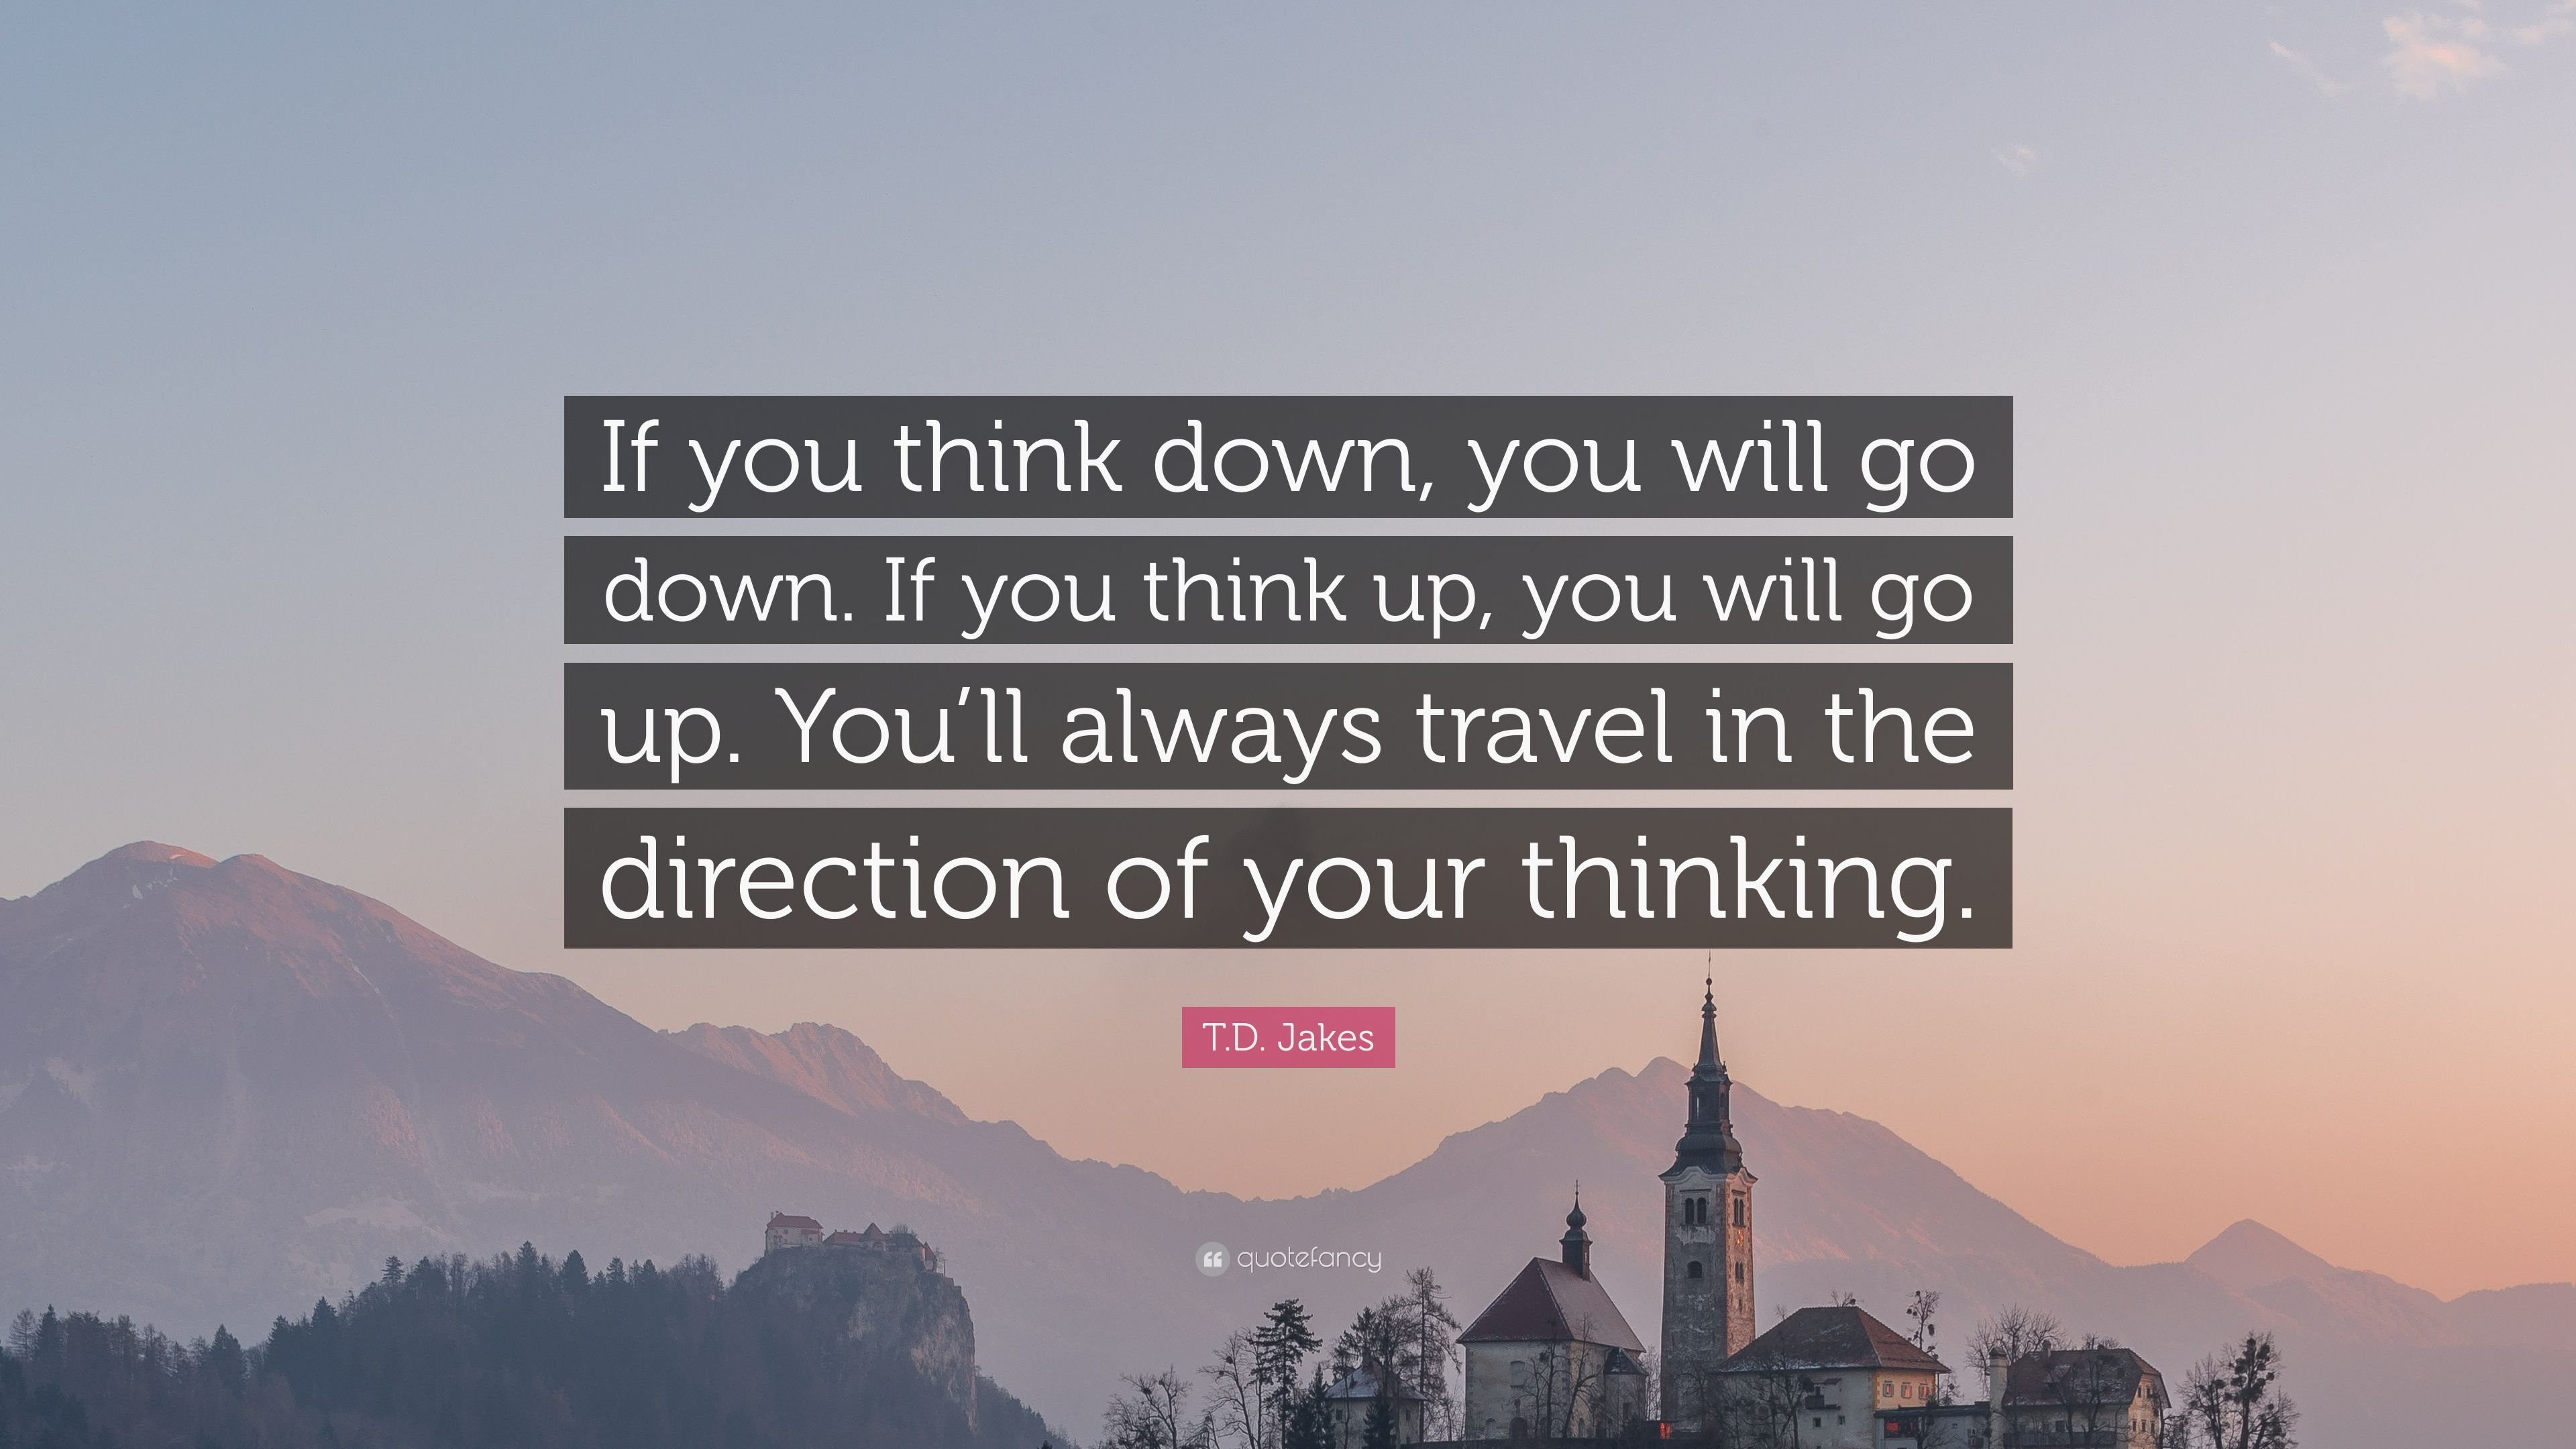 William Shakespeare Love Quotes Wallpaper T D Jakes Quote If You Think Down You Will Go Down If